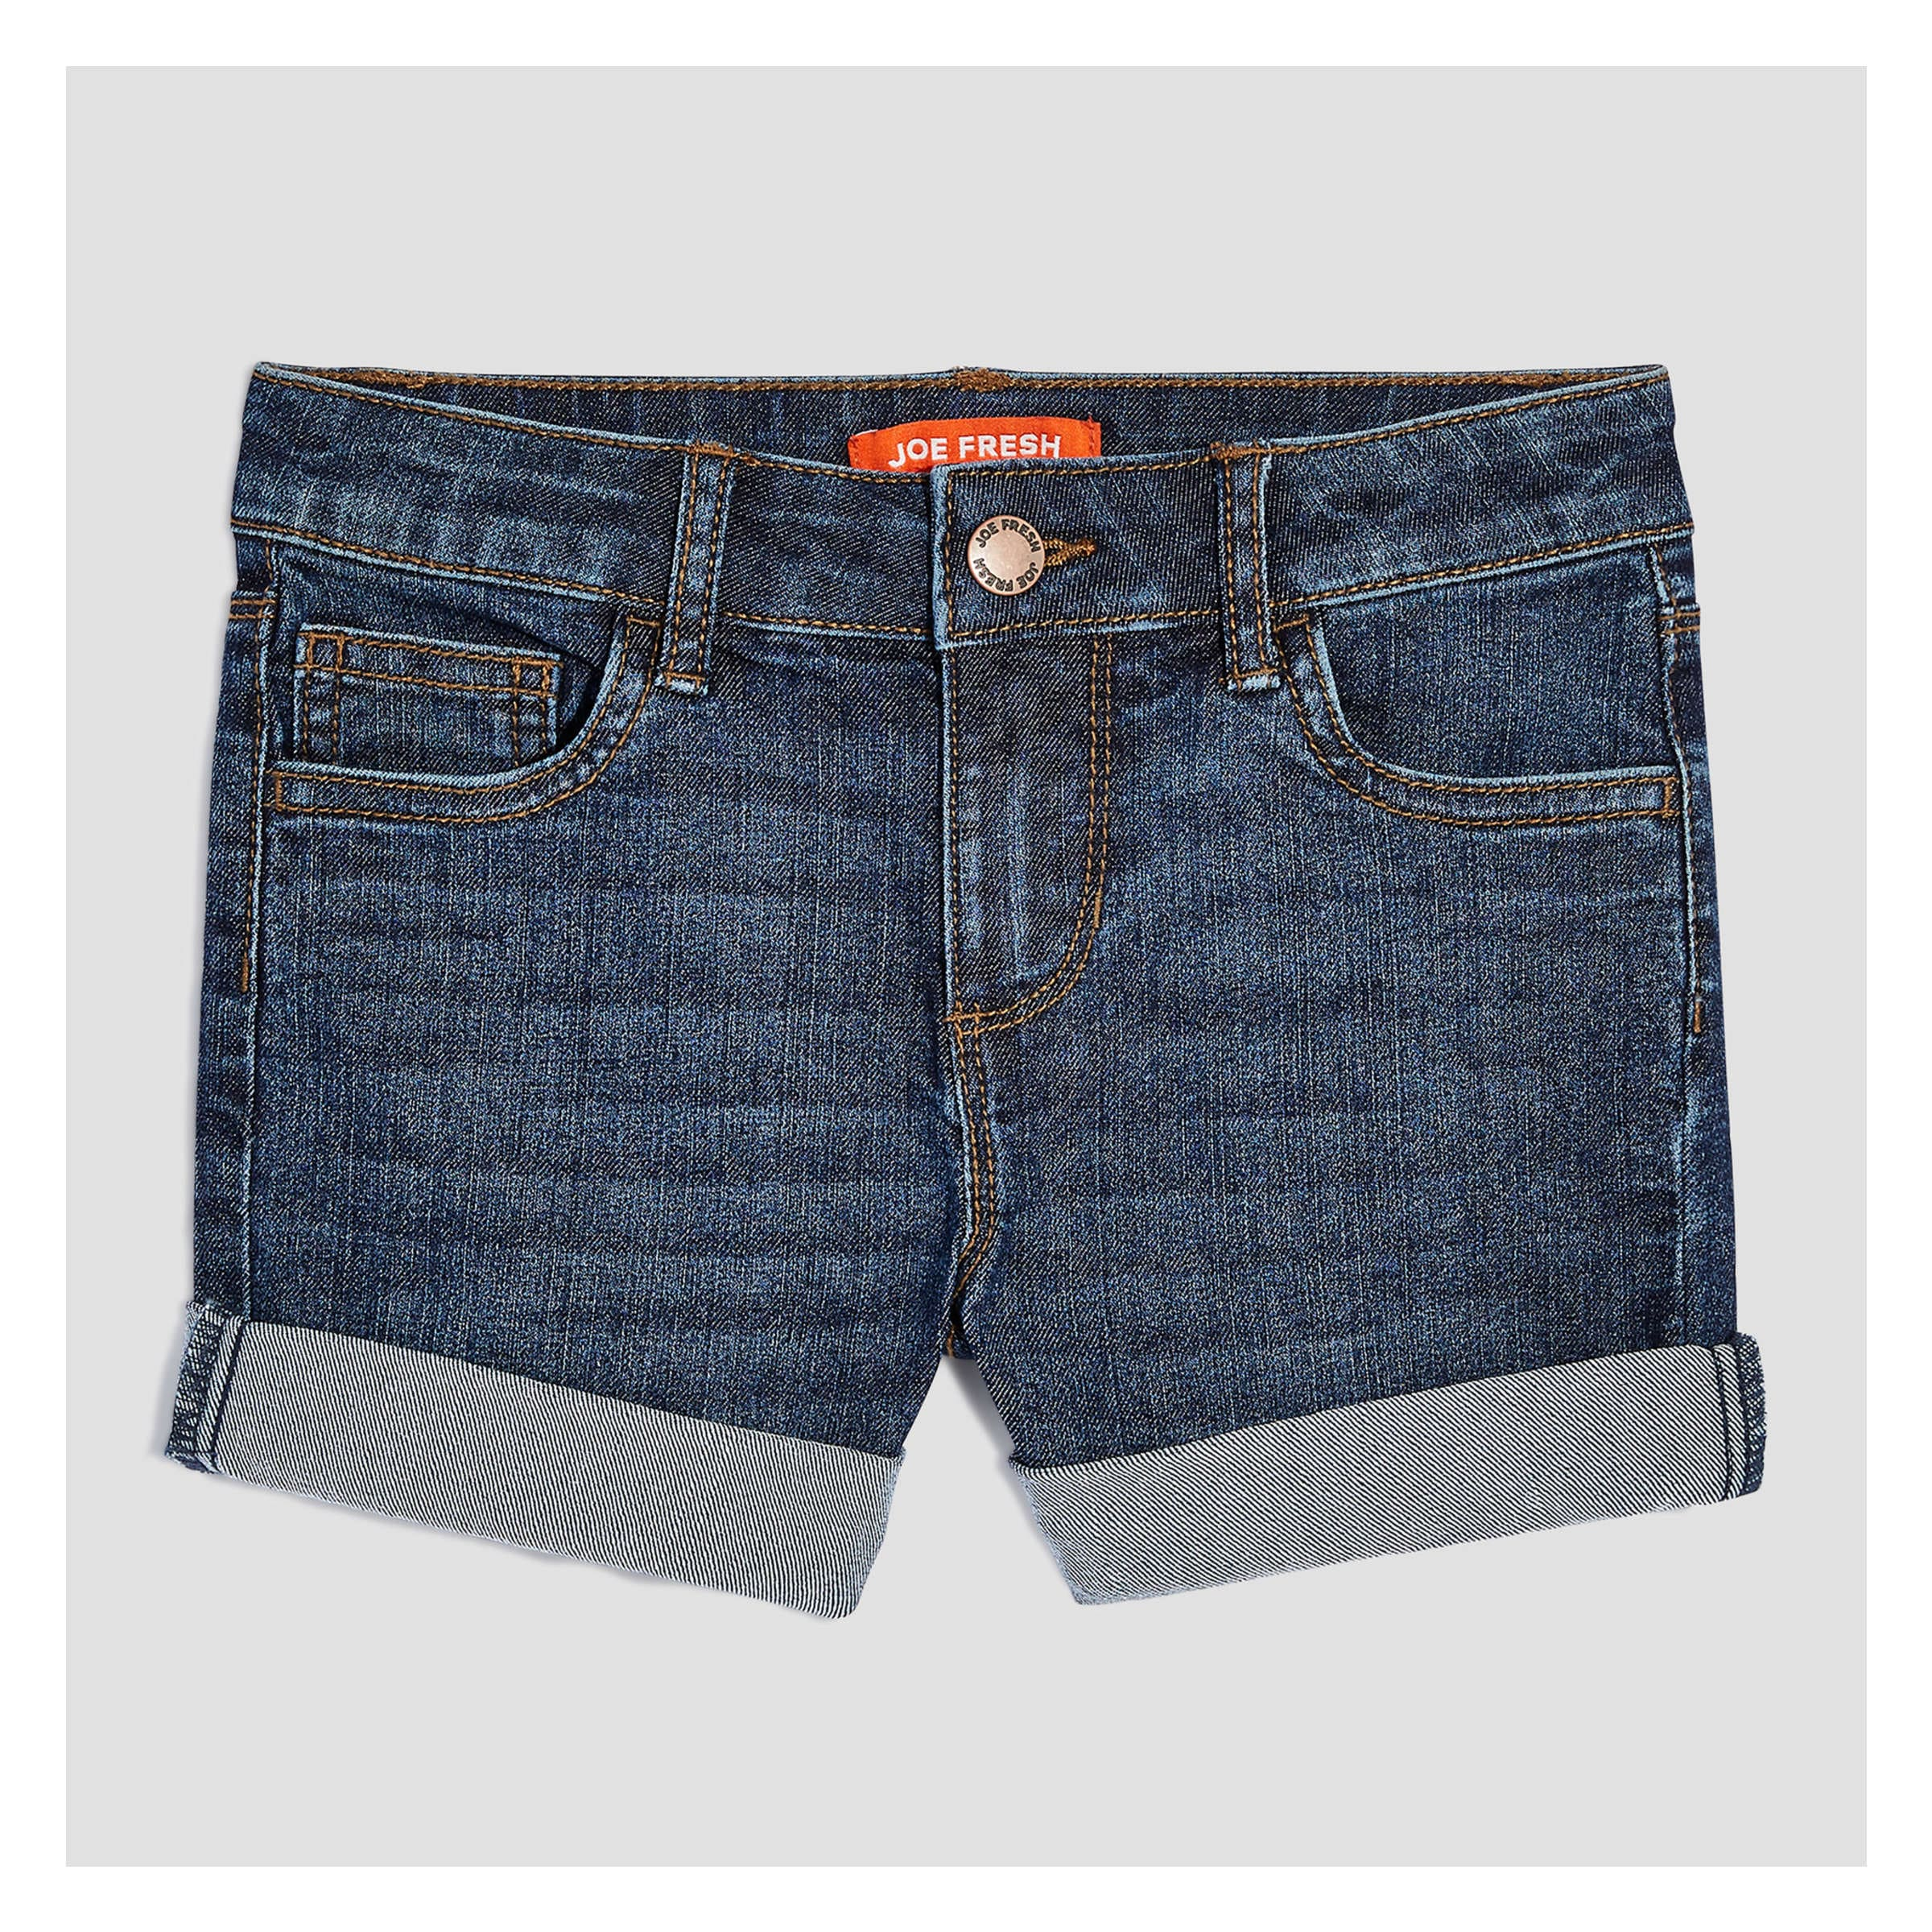 b6ef1b9612 Kid Girls' Denim Shorts in Dark Wash from Joe Fresh